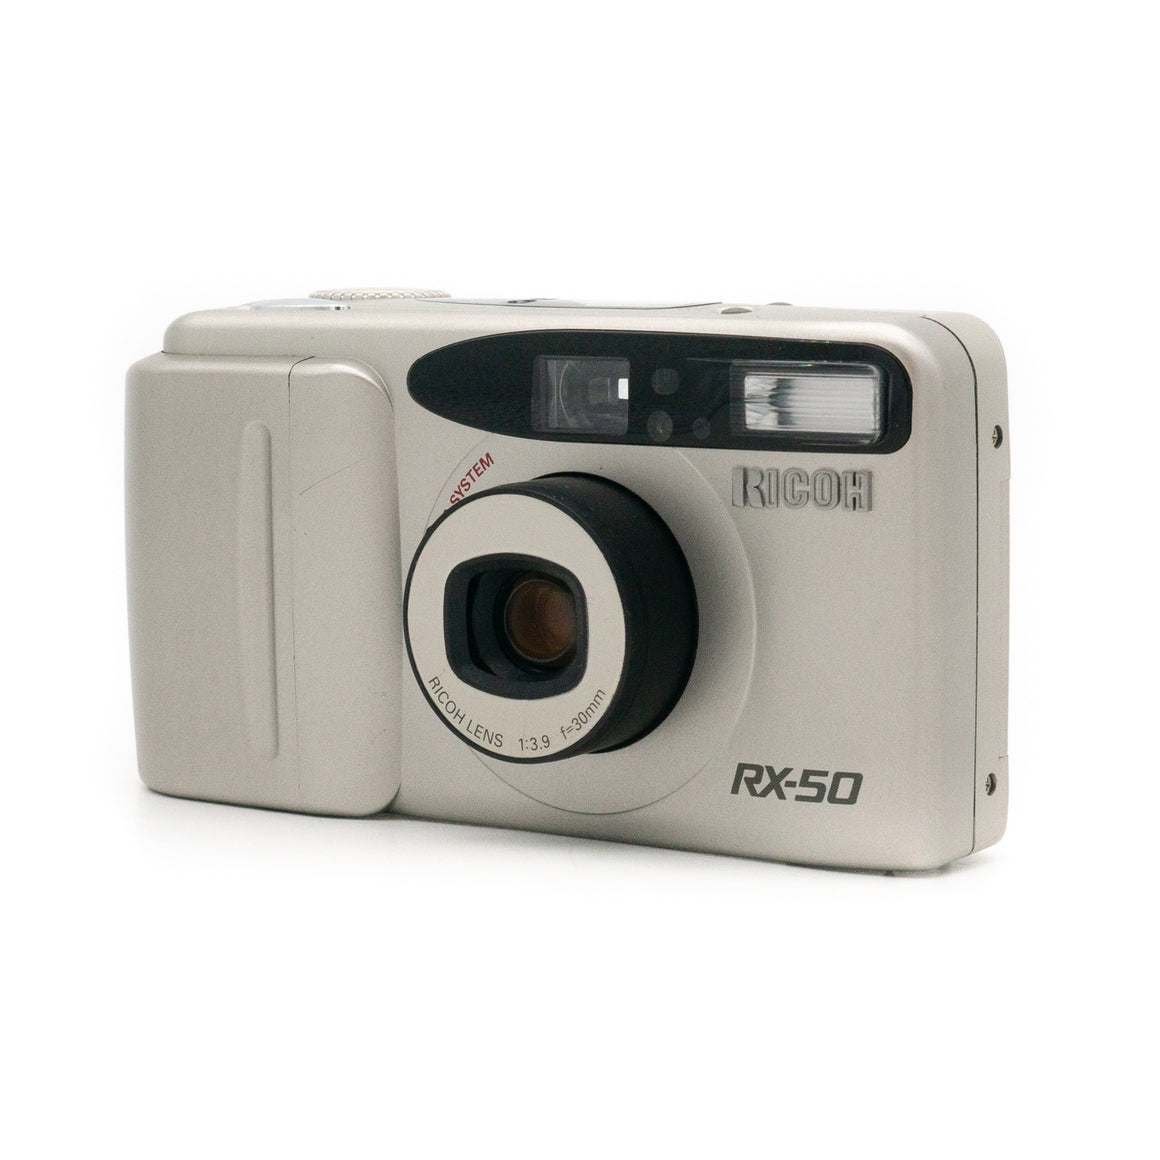 Ricoh RX-50 Date Point & Shoot Camera with 30mm f/3.9 Lens